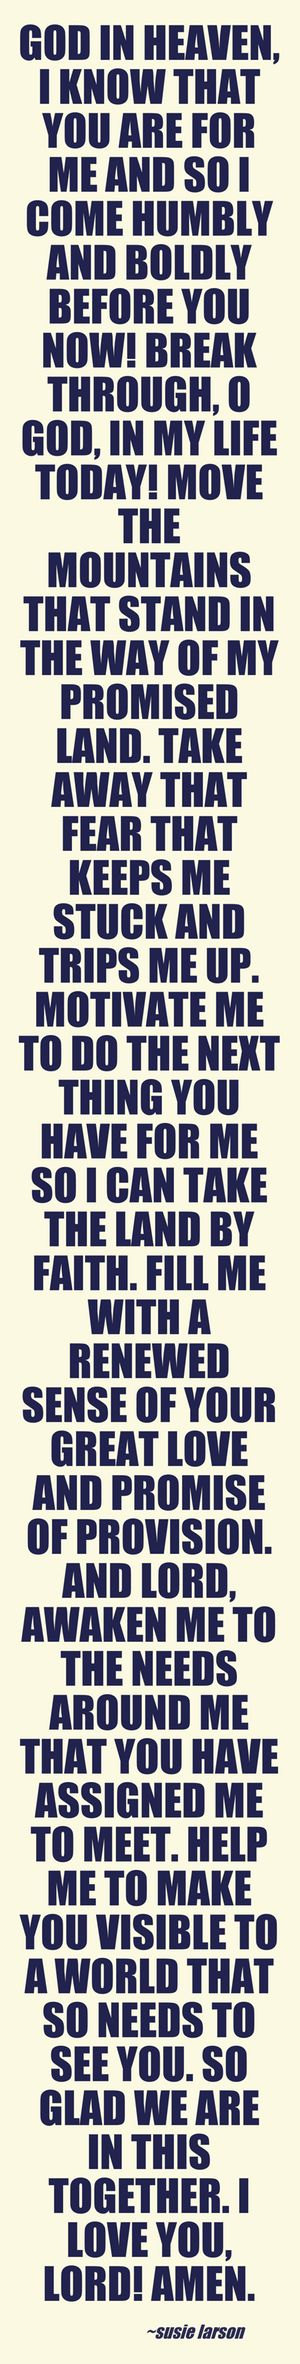 This is the cry of my heart unto The Lord, this is my prayer for myself and my brothers and sisters In Christ Jesus.